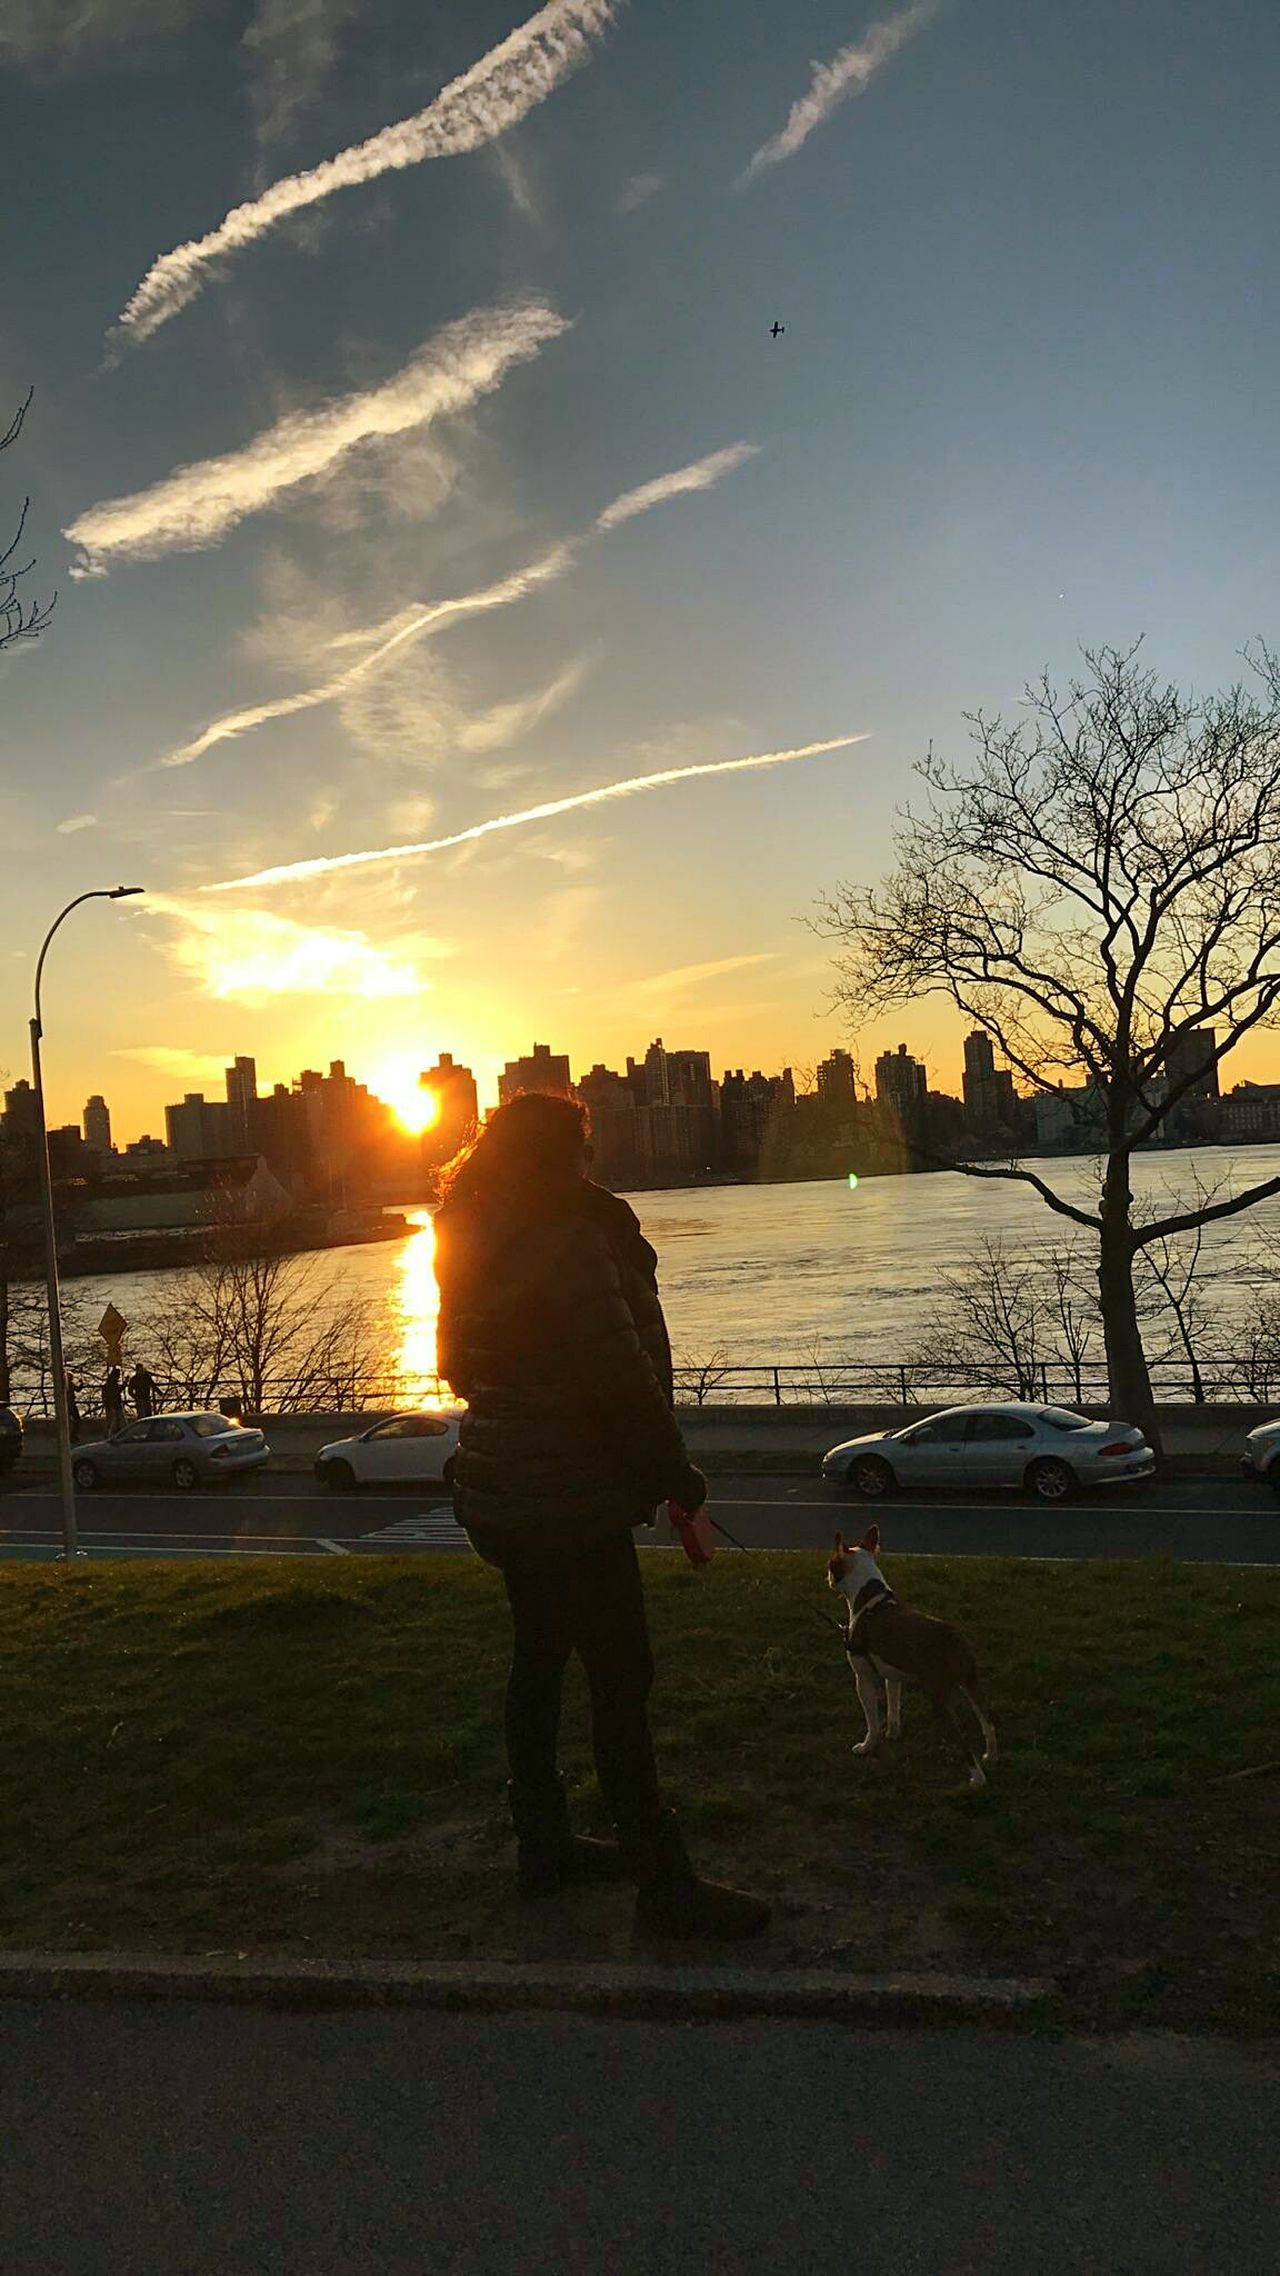 Perfect day... 🌇🌞🌳🌸 Hello World ✌ Beautiful People One Woman Only That's Me Sky Walking Hello World Check This Out Outdoors Sunset One Person Nature Day City Cold Days Park Astoriapark Astoria Queens Astoria, Queens, NYC Bostonterrier I❤my Dog Street Winter Sun